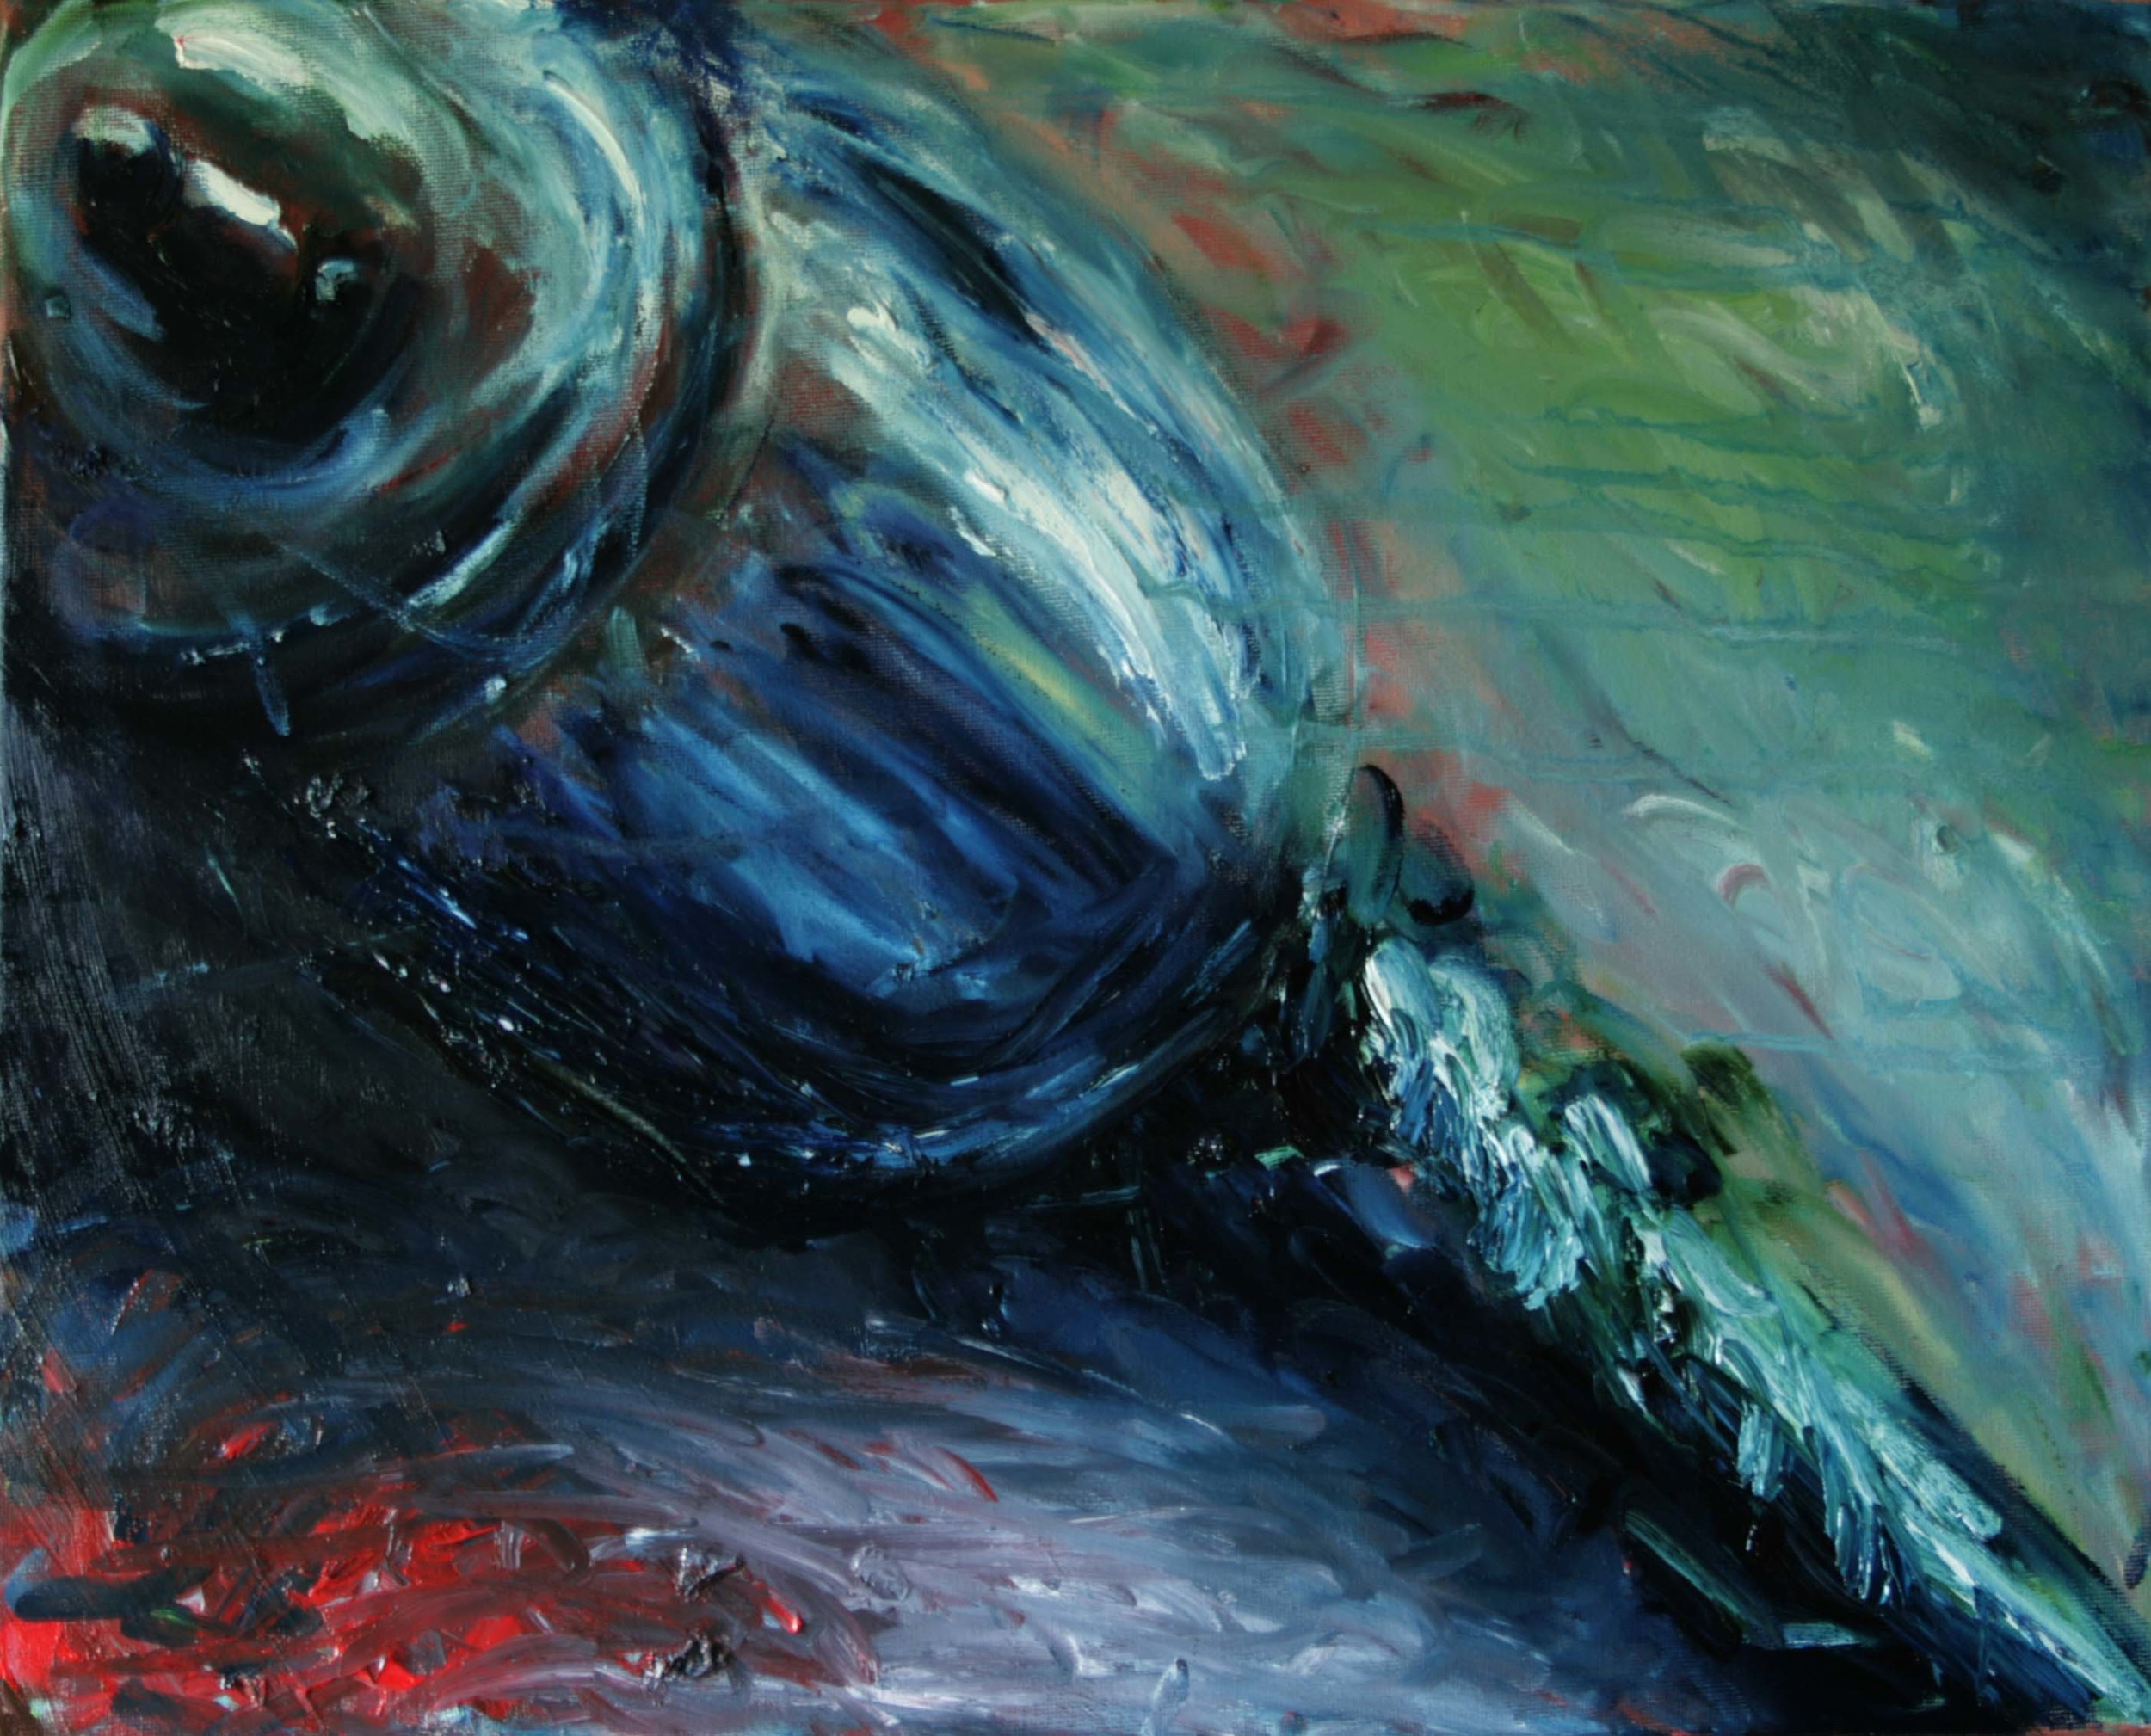 Impression Horn Rattle, Oil on canvas, 16''x20'', 2008